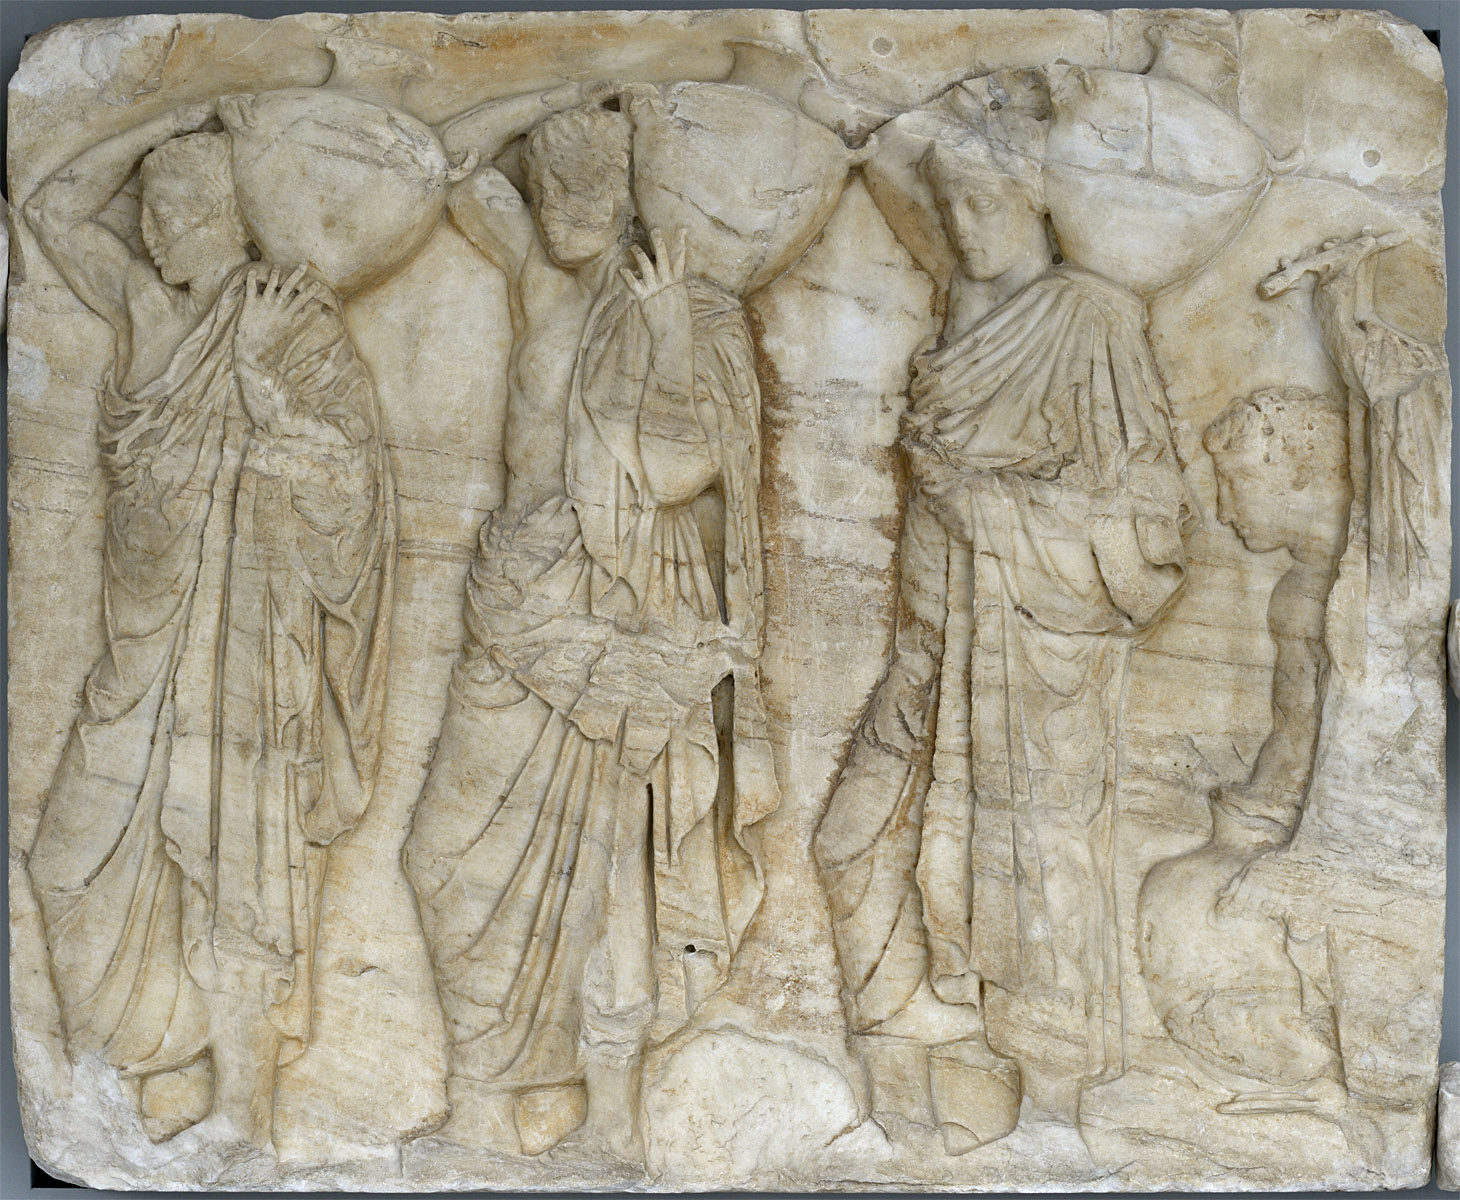 Panathenaic Procession. Hydria-bearers. Frieze of Parthenon. The Northern face, block N VI. Marble. 5th century BCE. Inv. No. Acr. 864. Athens, New Acropolis Museum